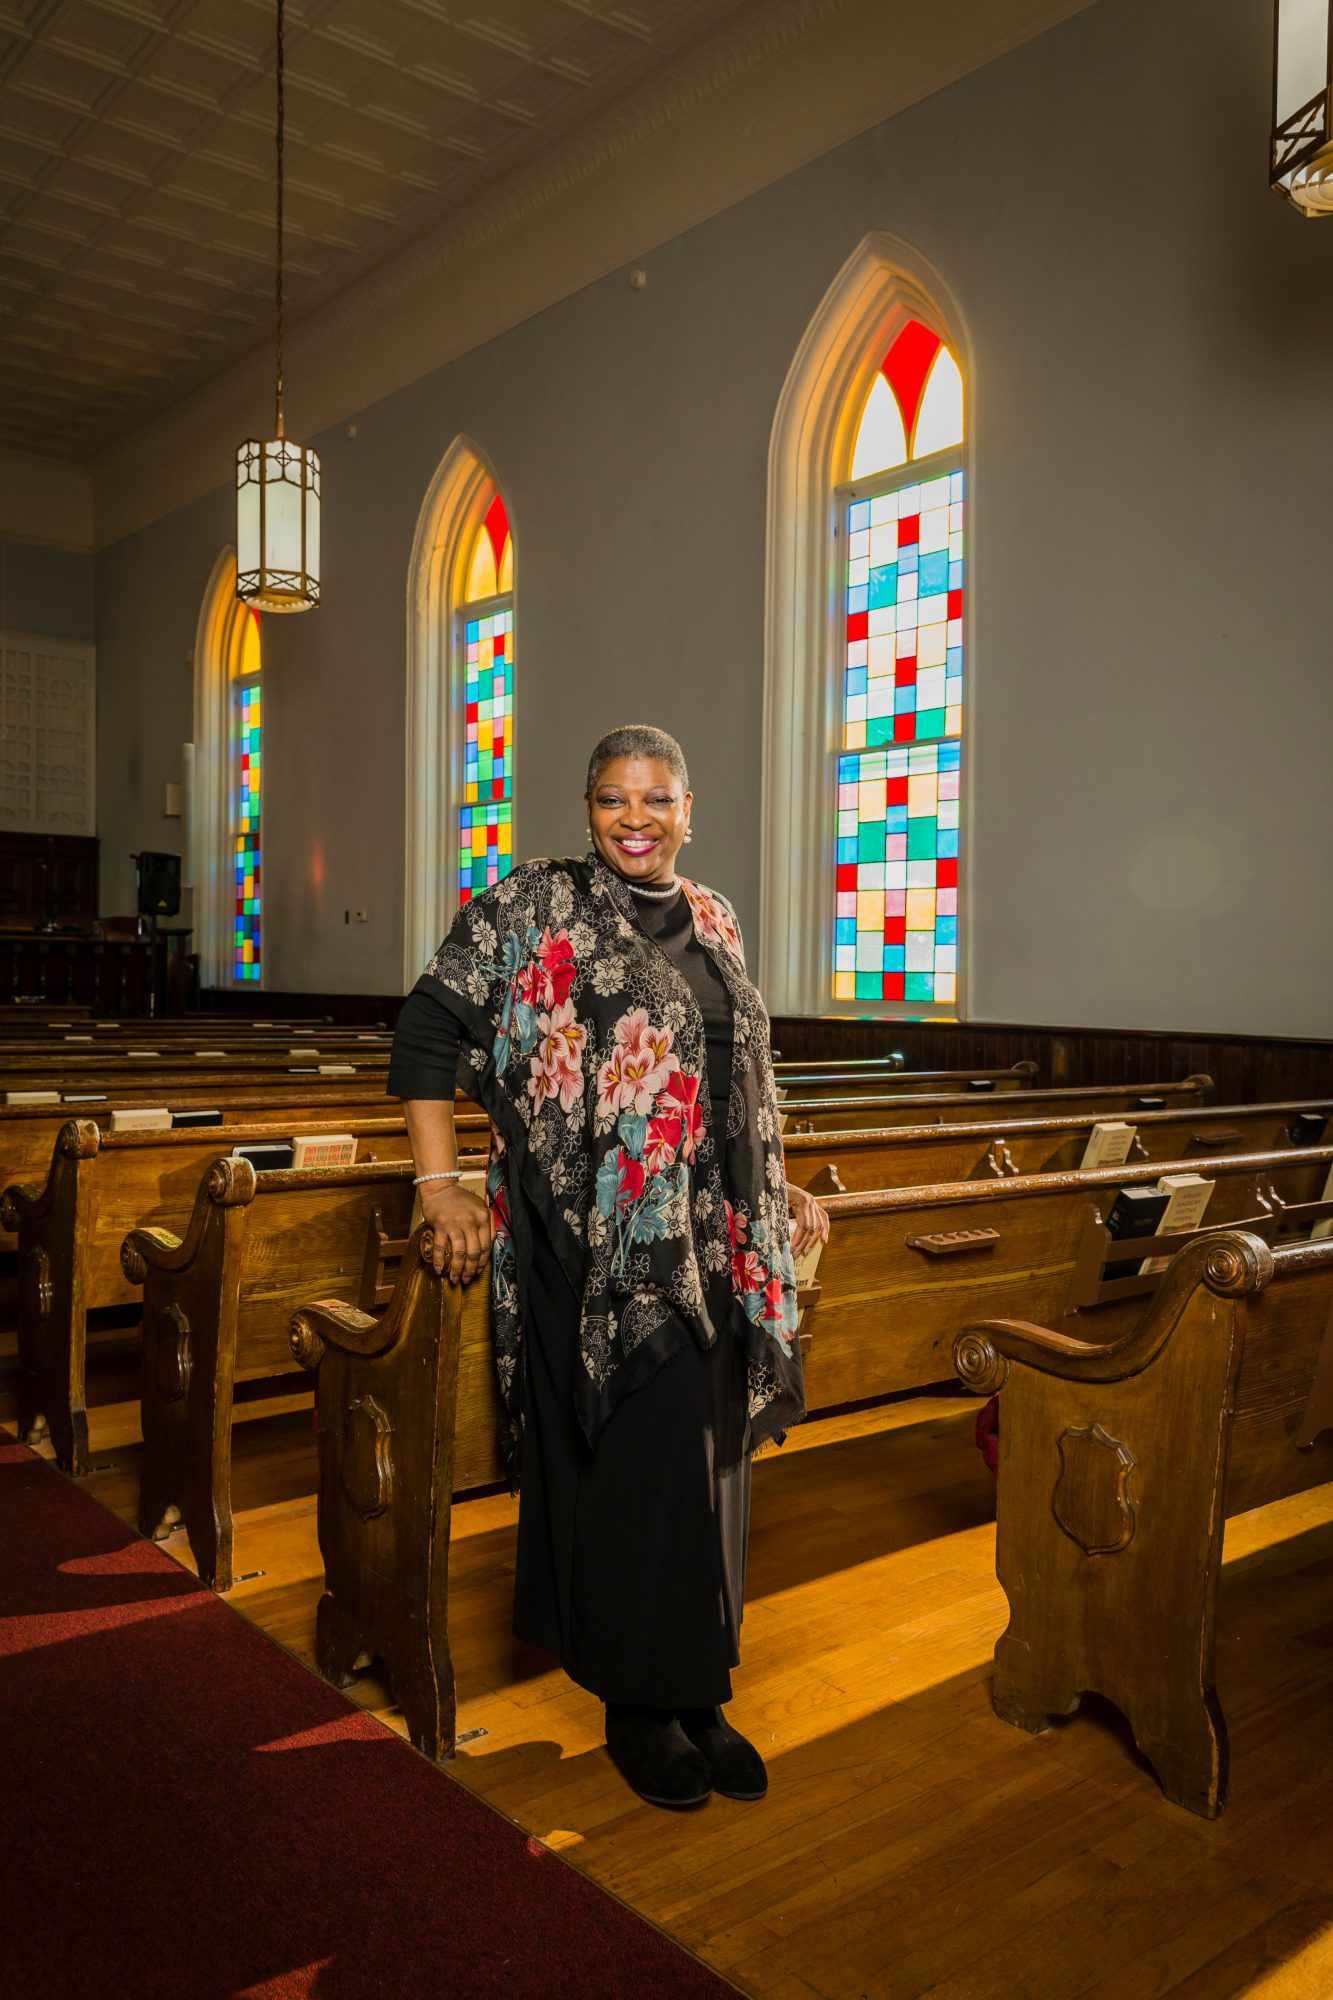 dexter avenue king memorial baptist church tours wanda battle montgomery alabama